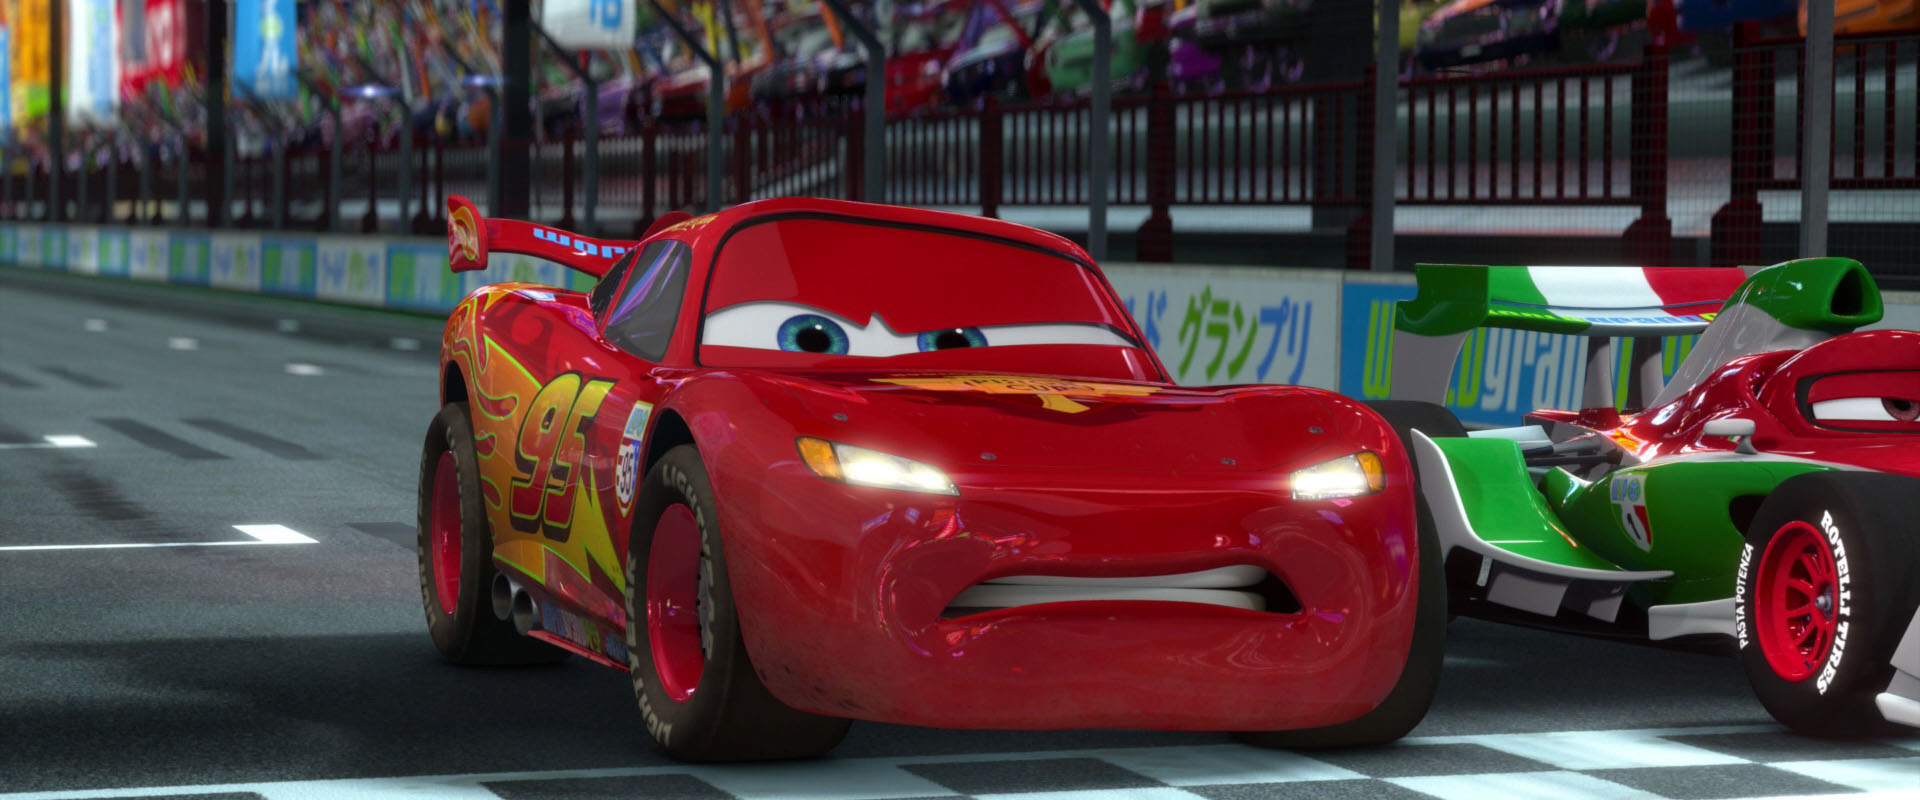 lightning mcqueen character from cars pixar planet fr. Black Bedroom Furniture Sets. Home Design Ideas